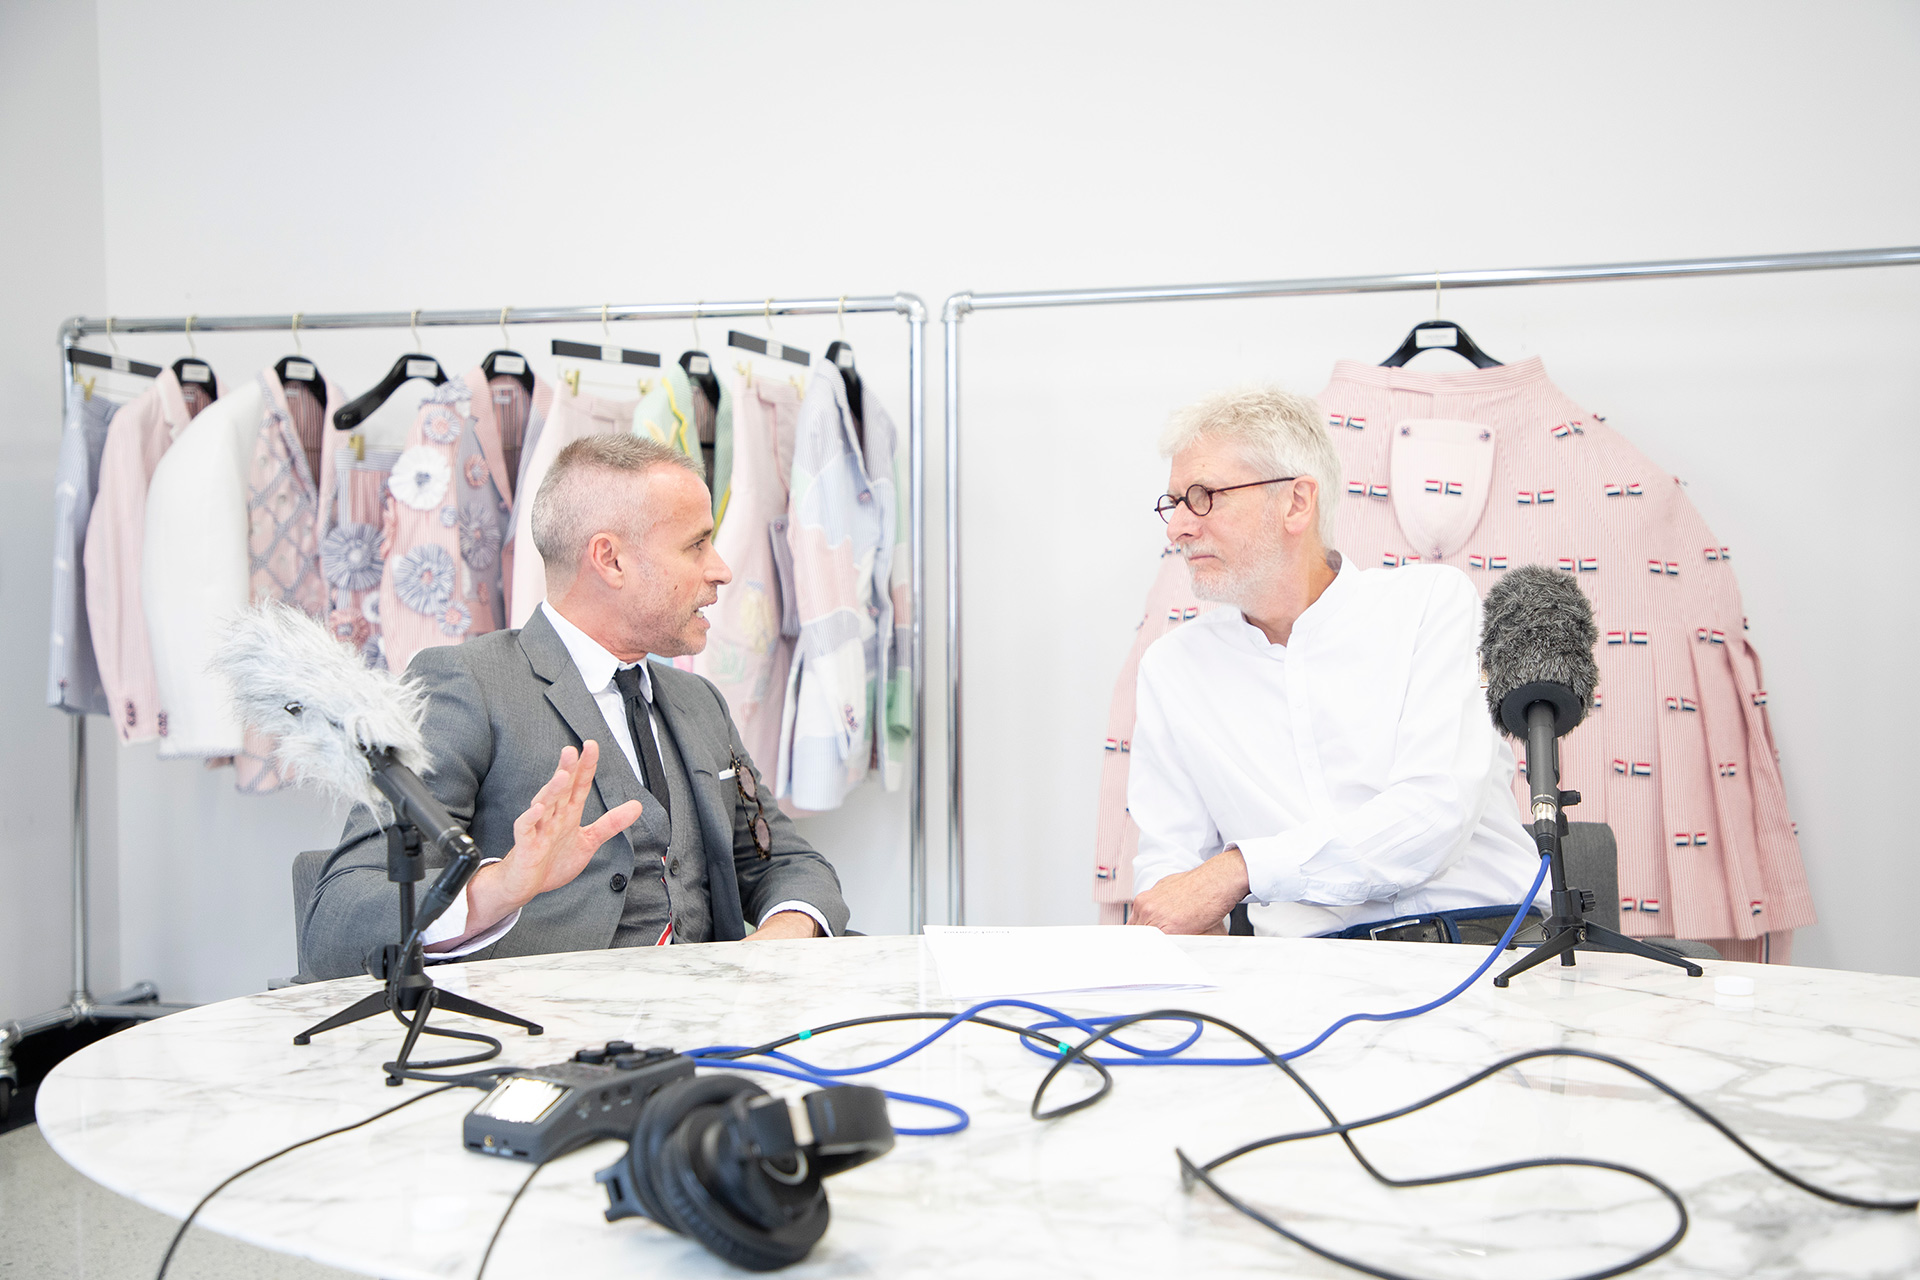 a photo of Thom Browne and Michael Glover at Browne's studio in New York, 2019.